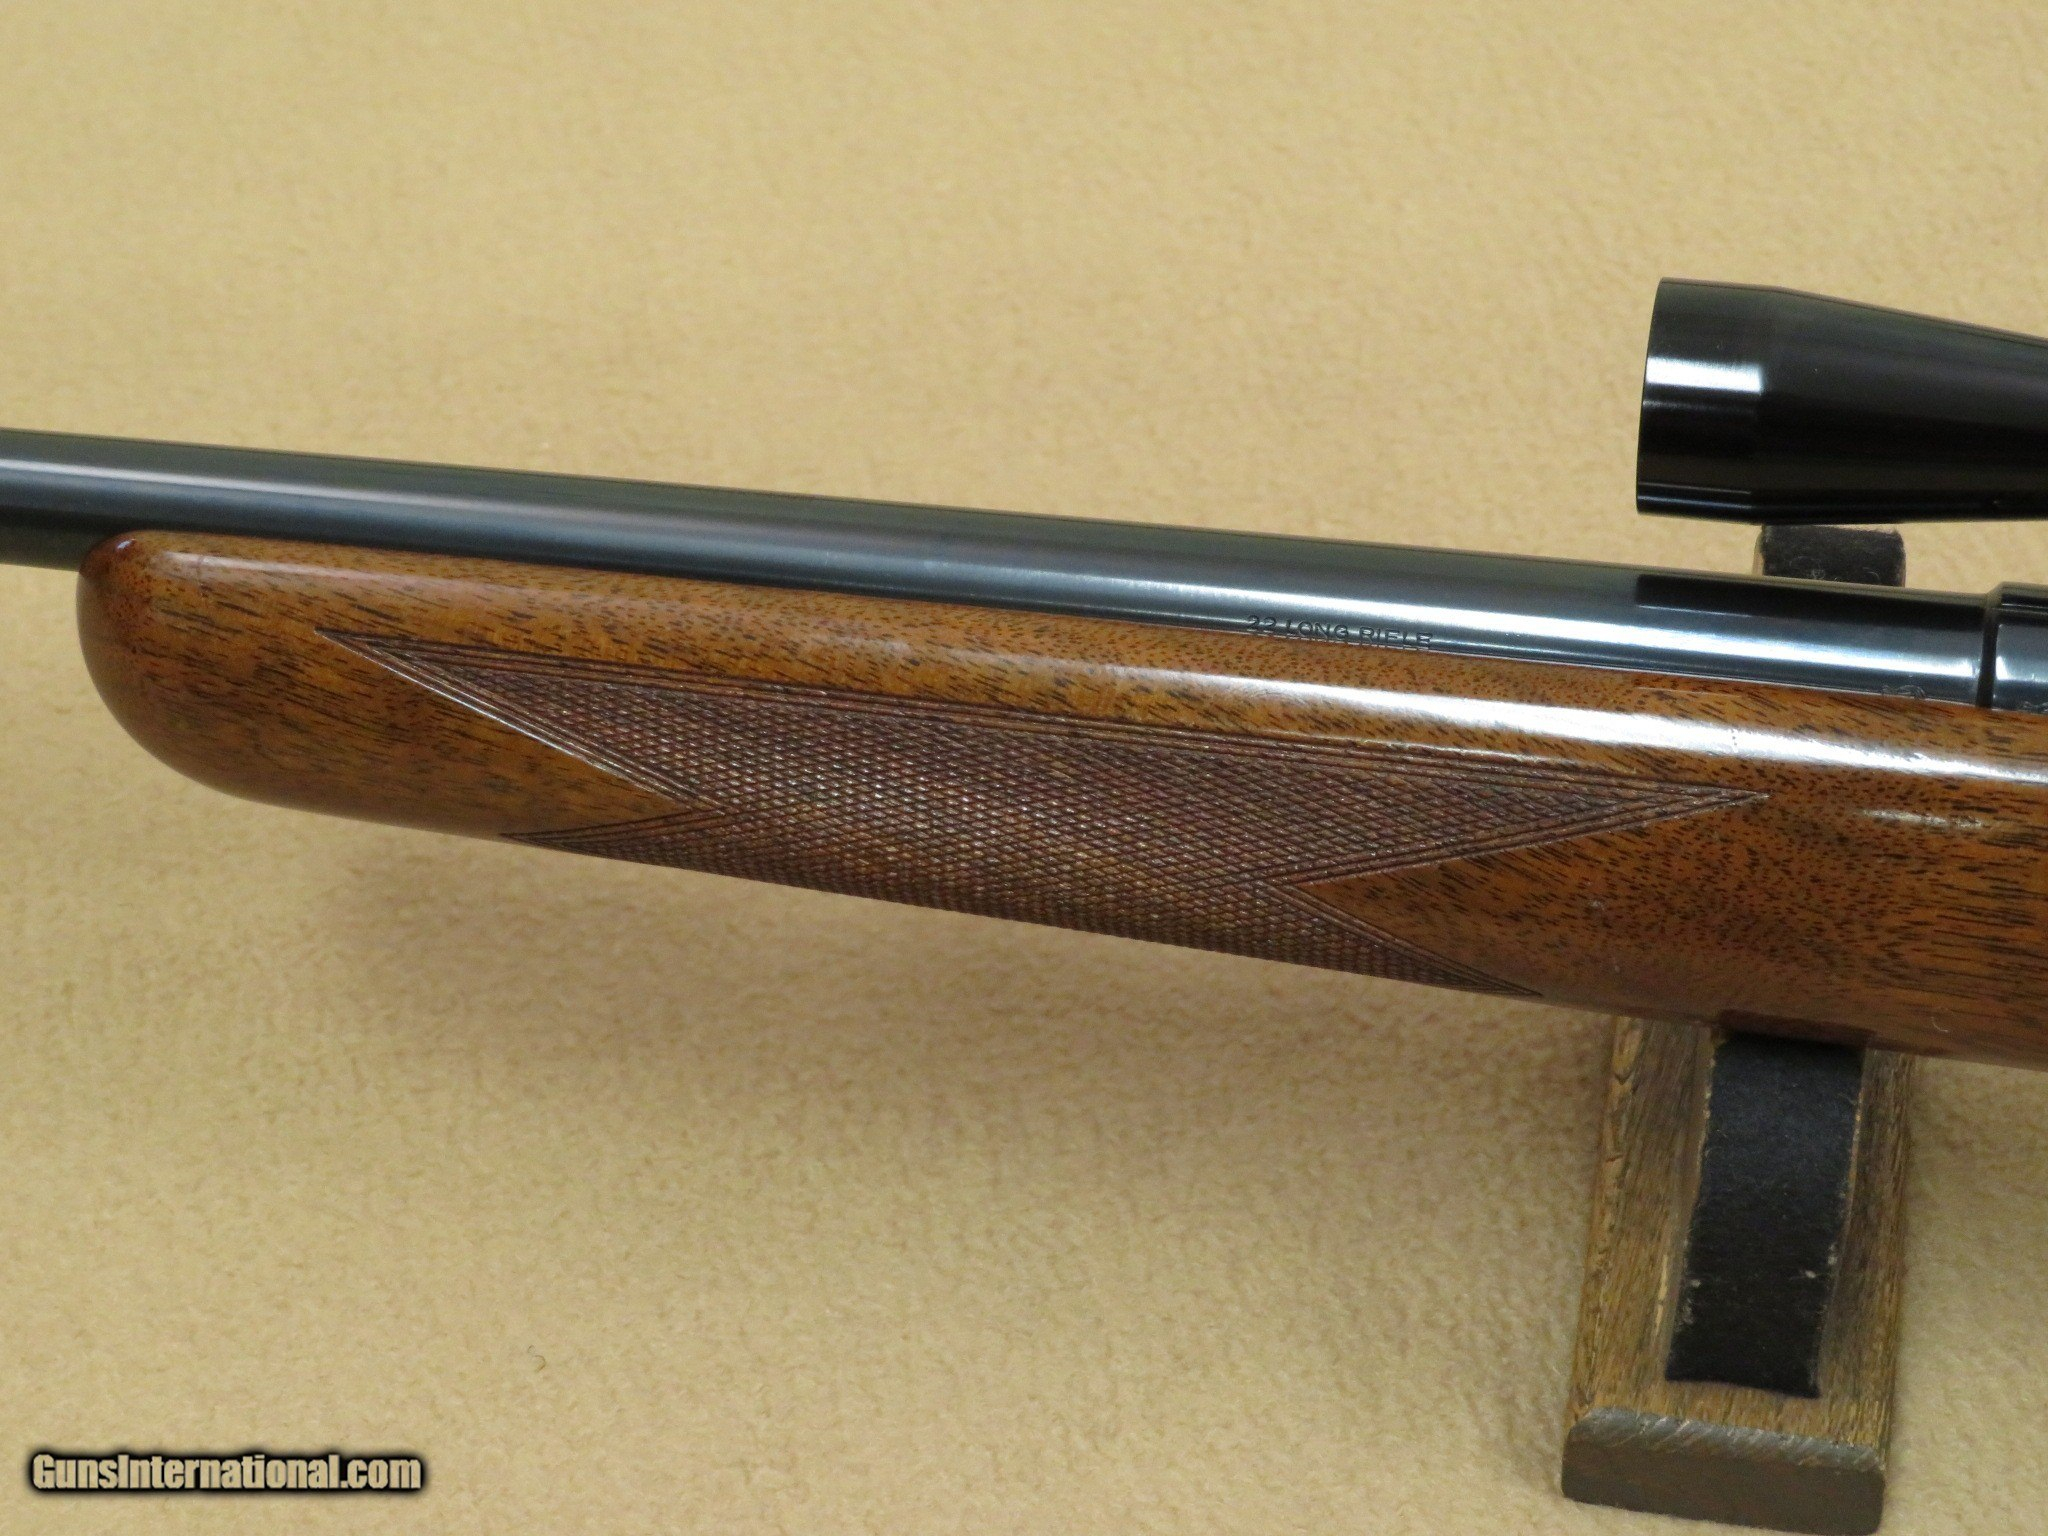 1969 Belgian Browning T-Bolt  22 Rifle w/ Vintage Browning